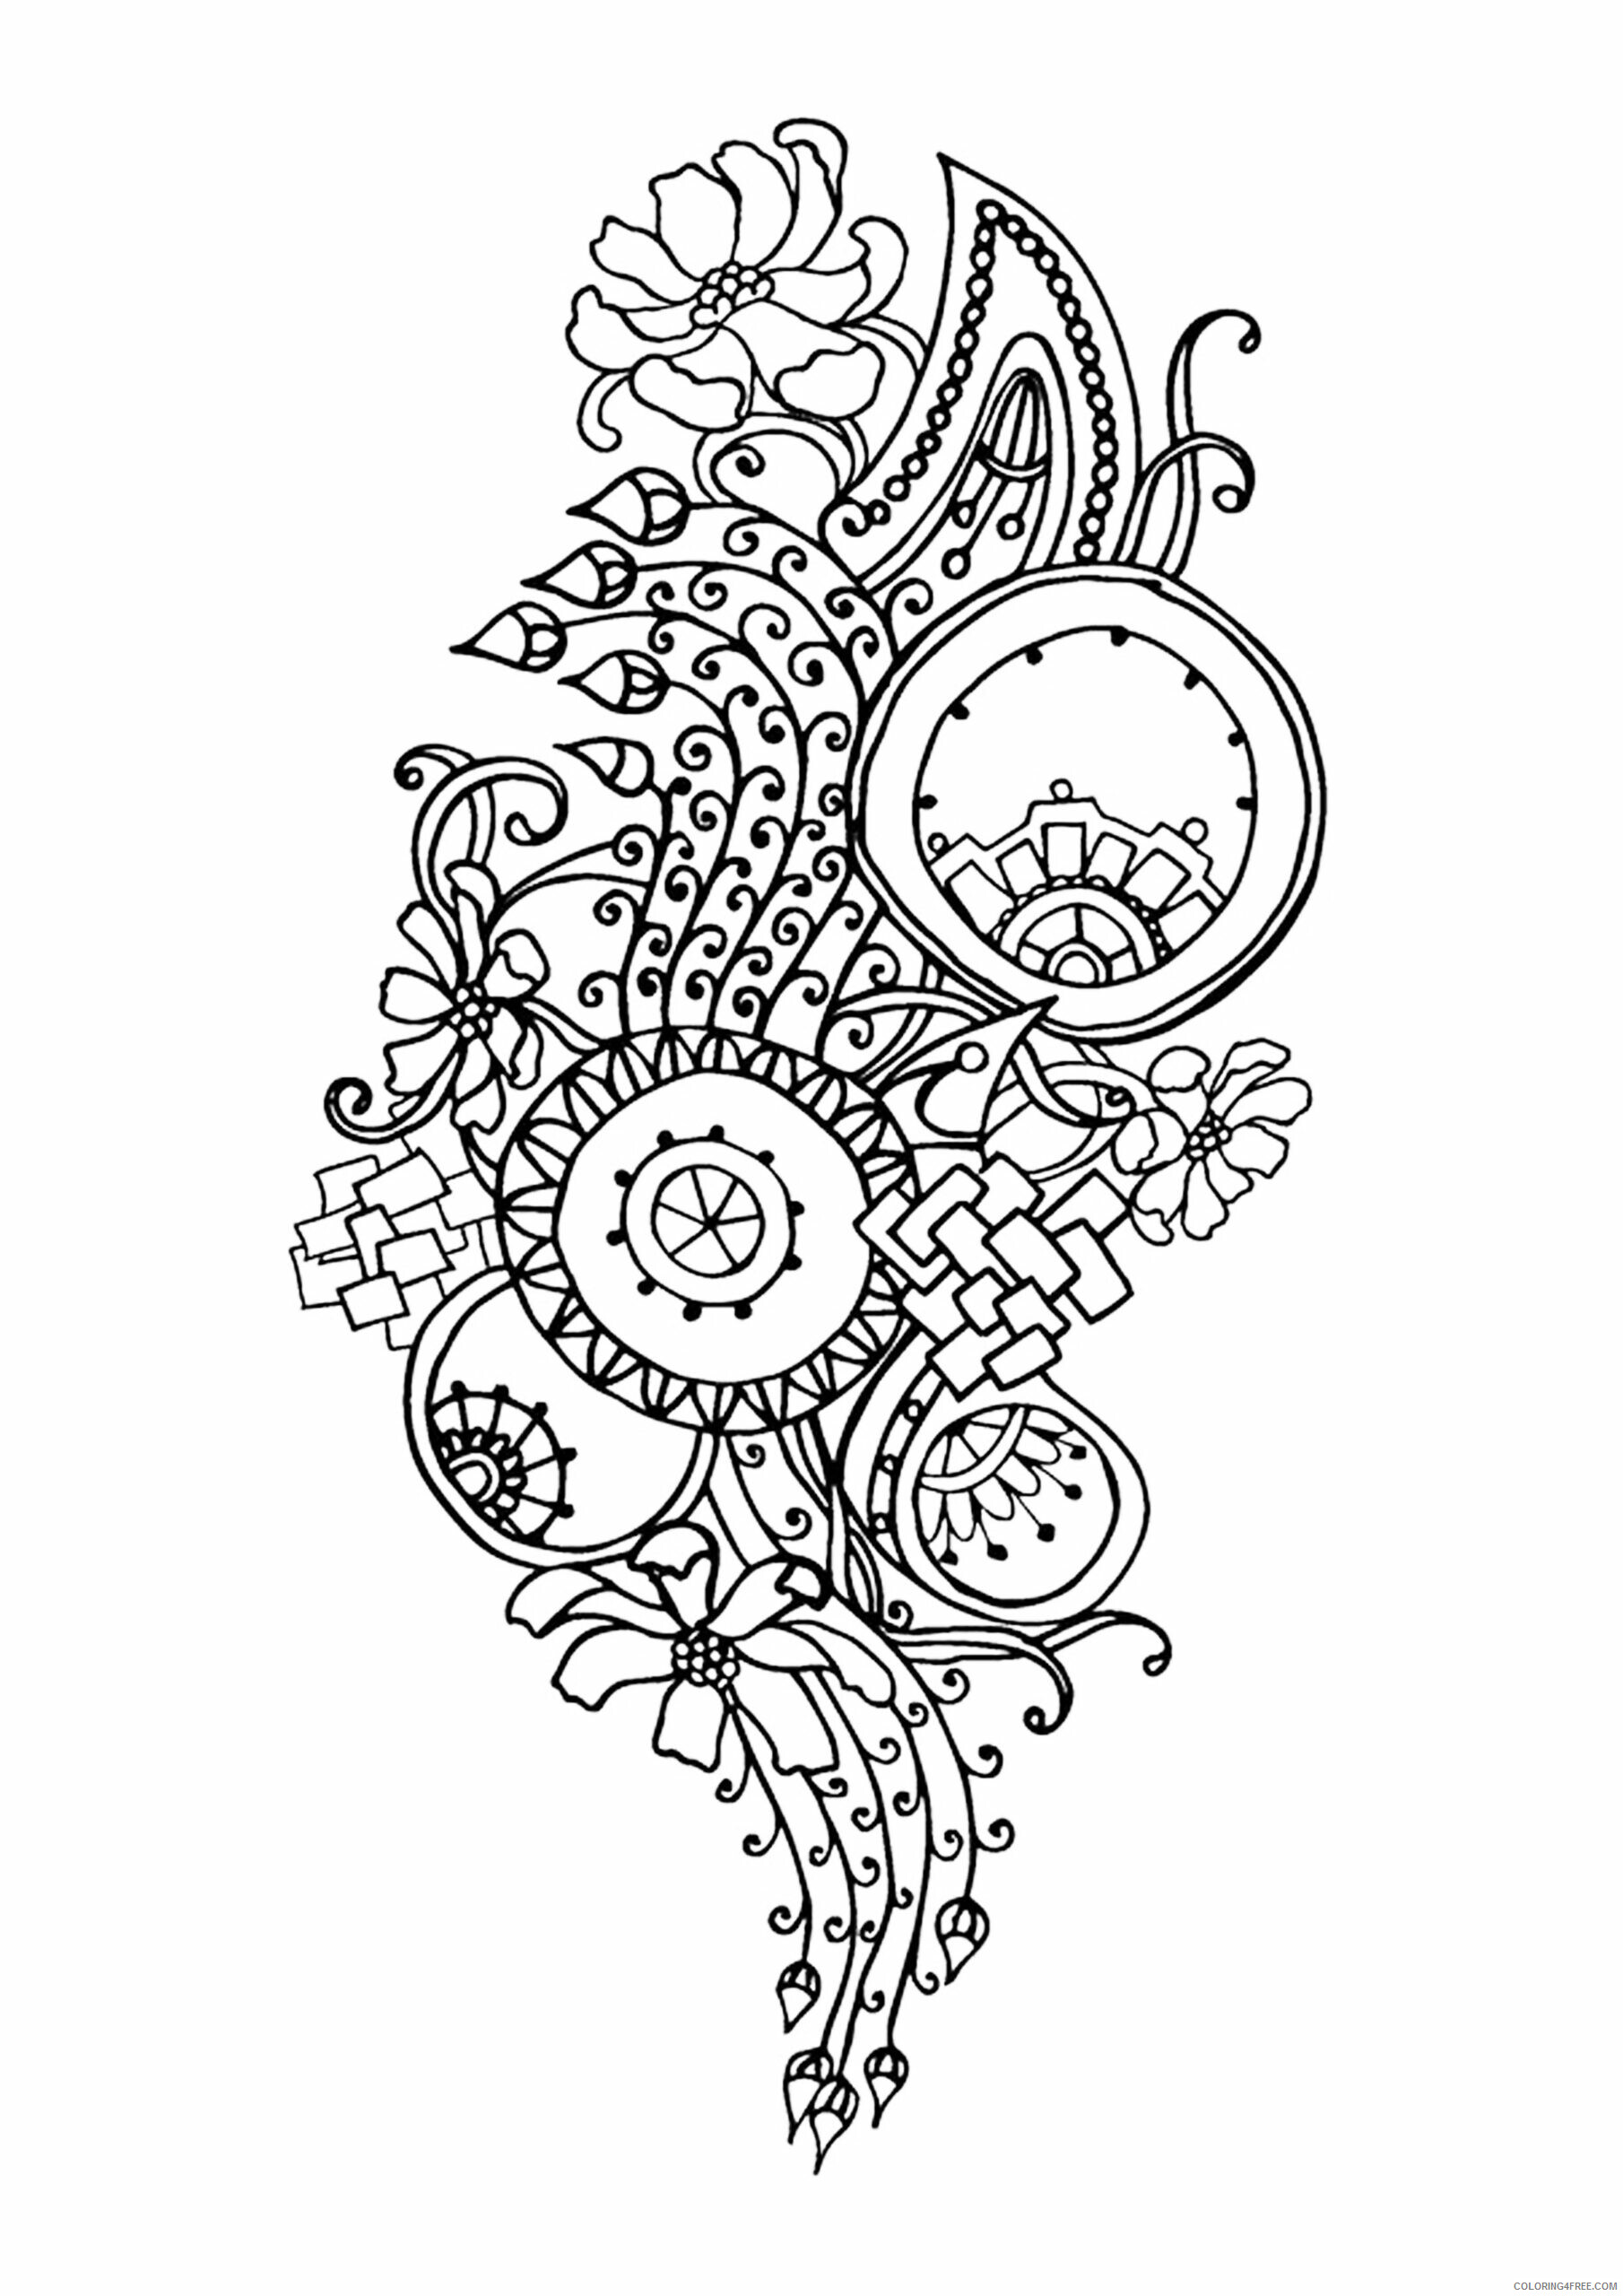 Adult Floral Coloring Pages Complex Flower for Adults Free Printable 2020 321 Coloring4free